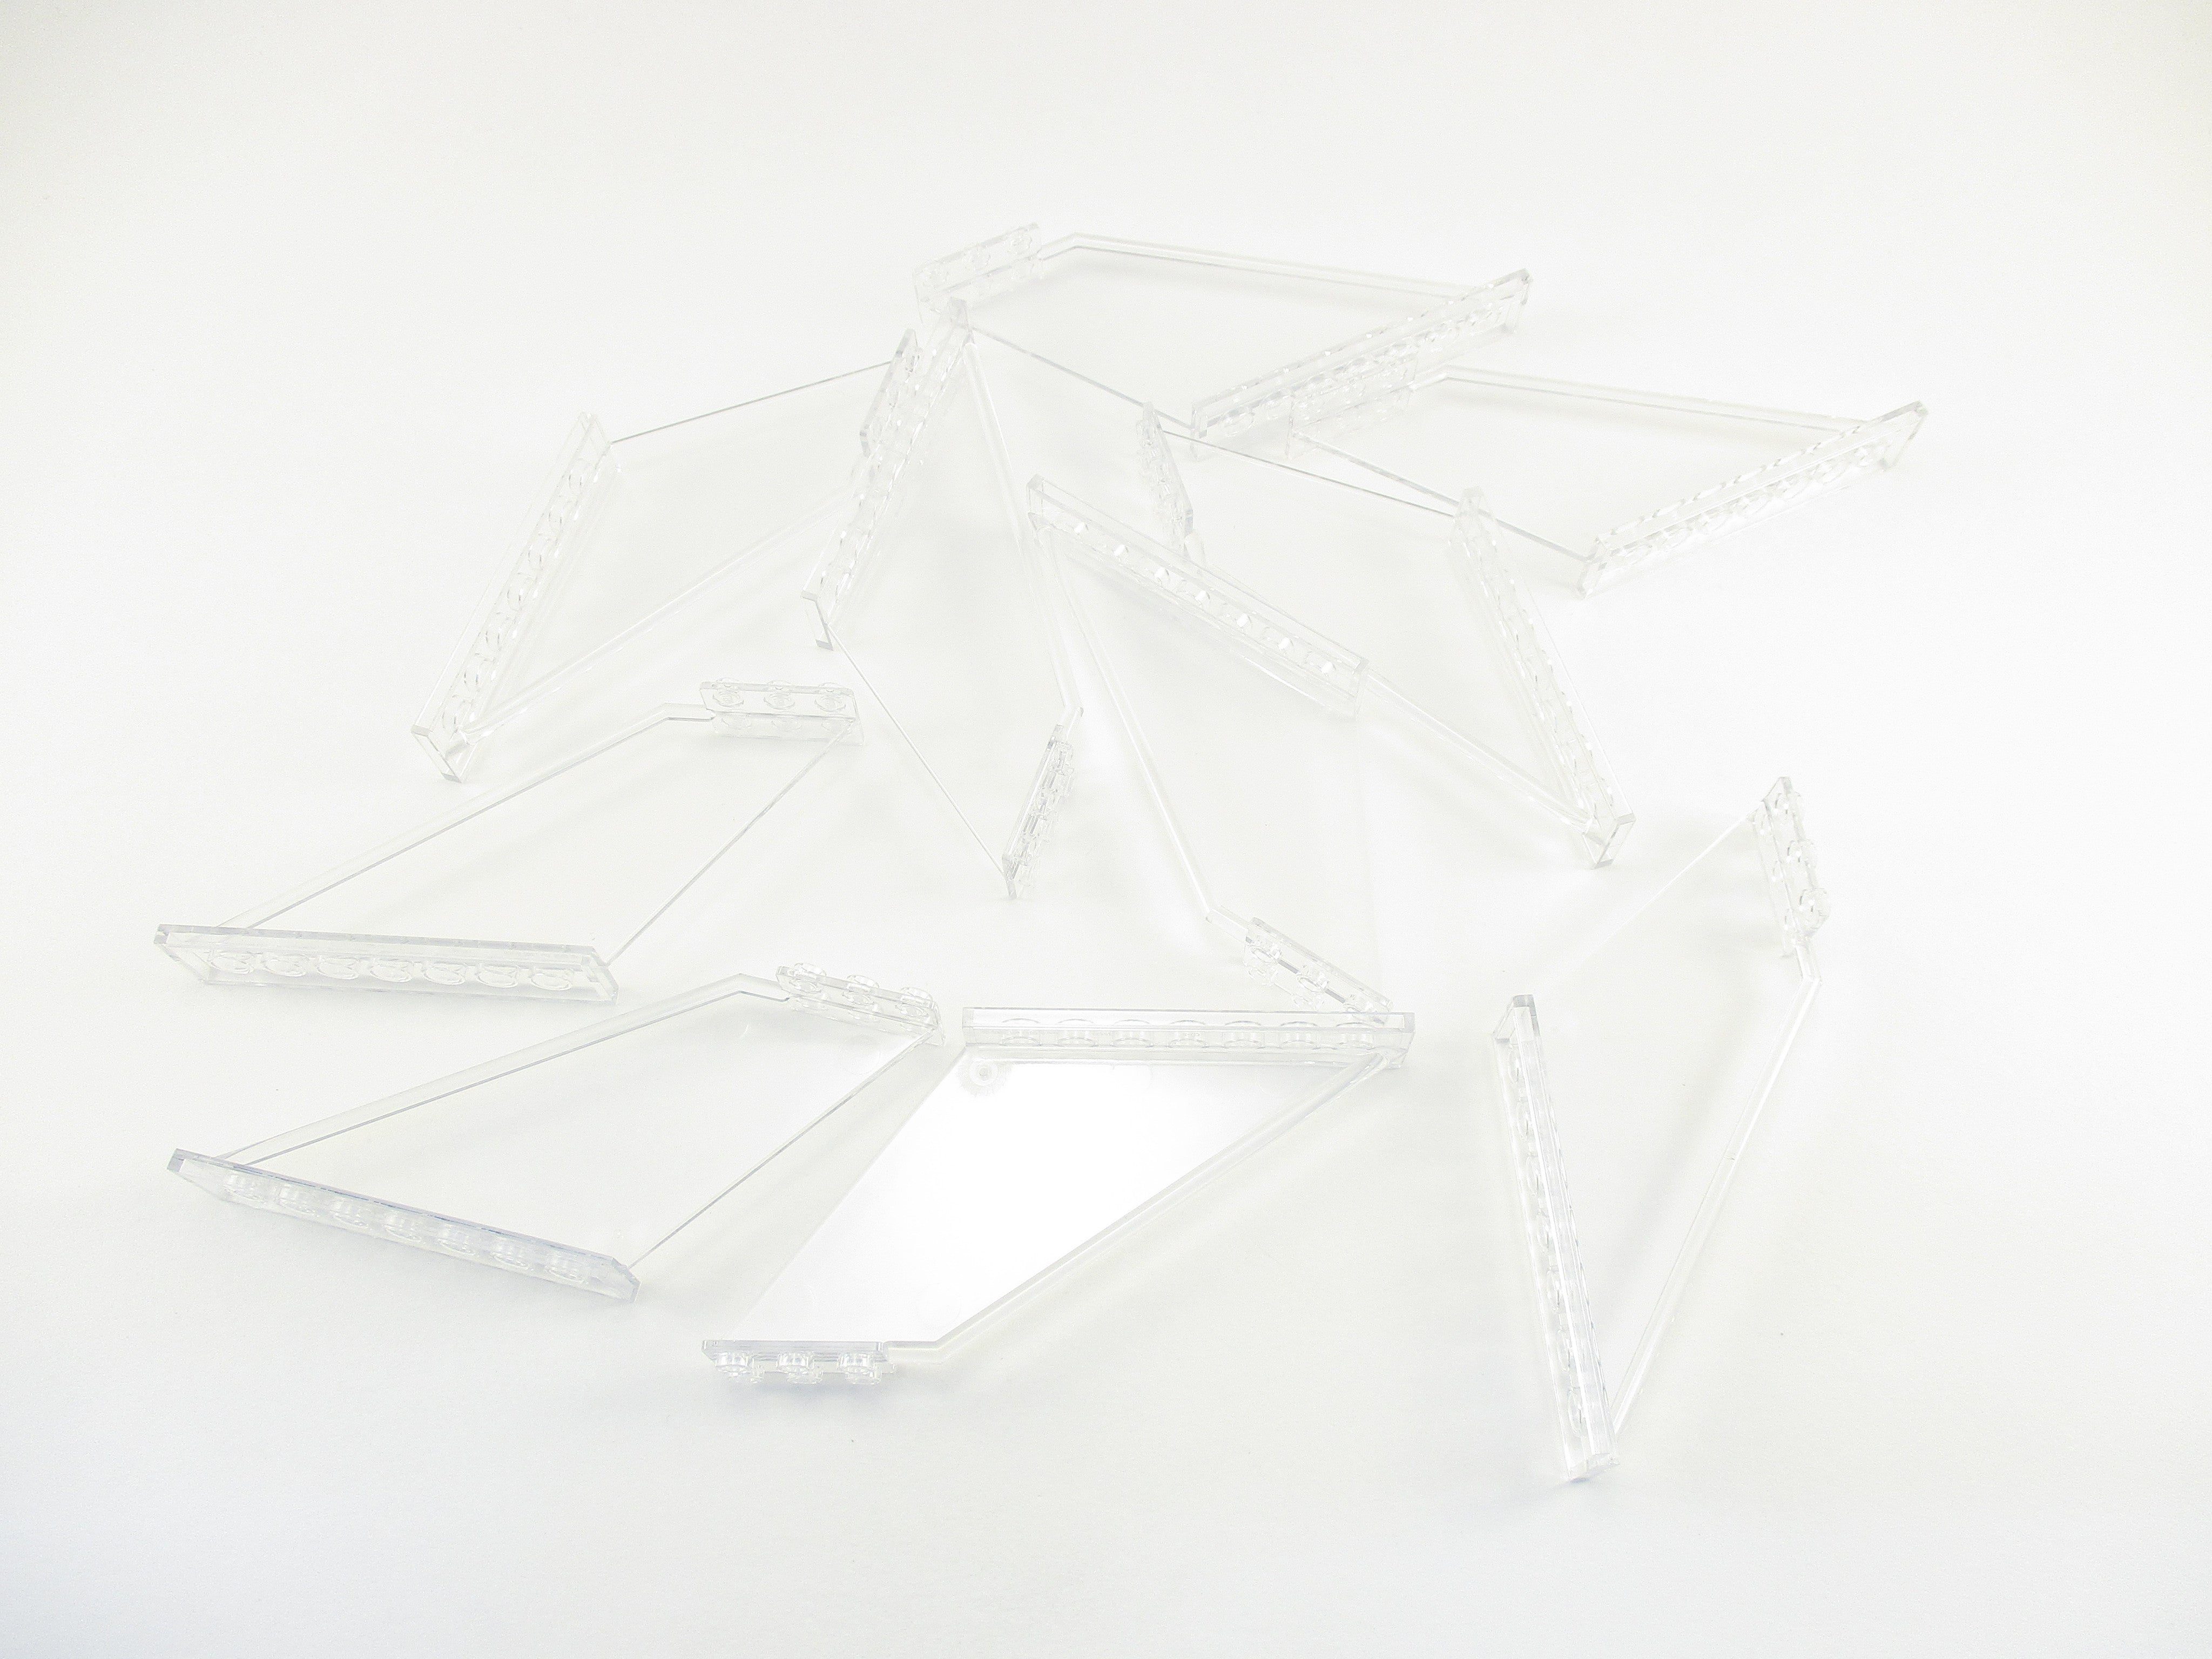 LEGO Trans Clear Tail 12x2x5 Lot of 10 Parts Pieces 87614